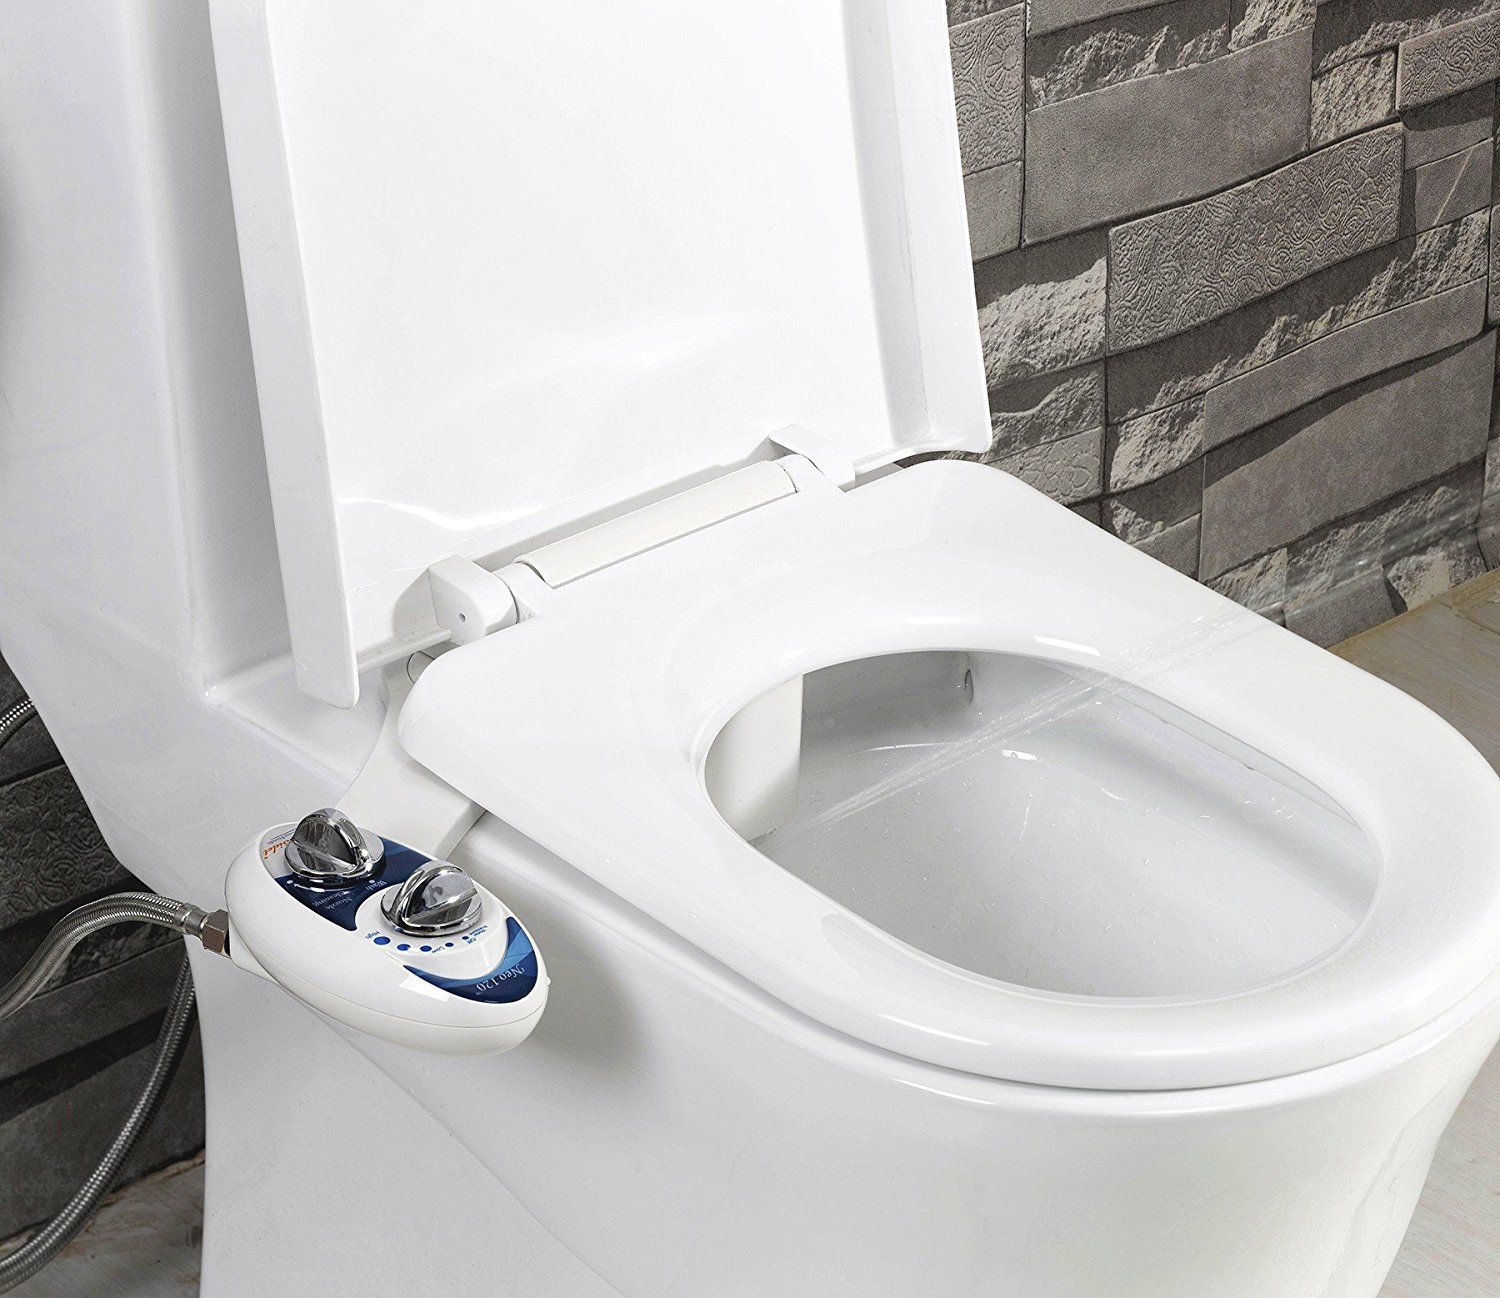 top 10 best bidet toilet seat review to ease choice seletion